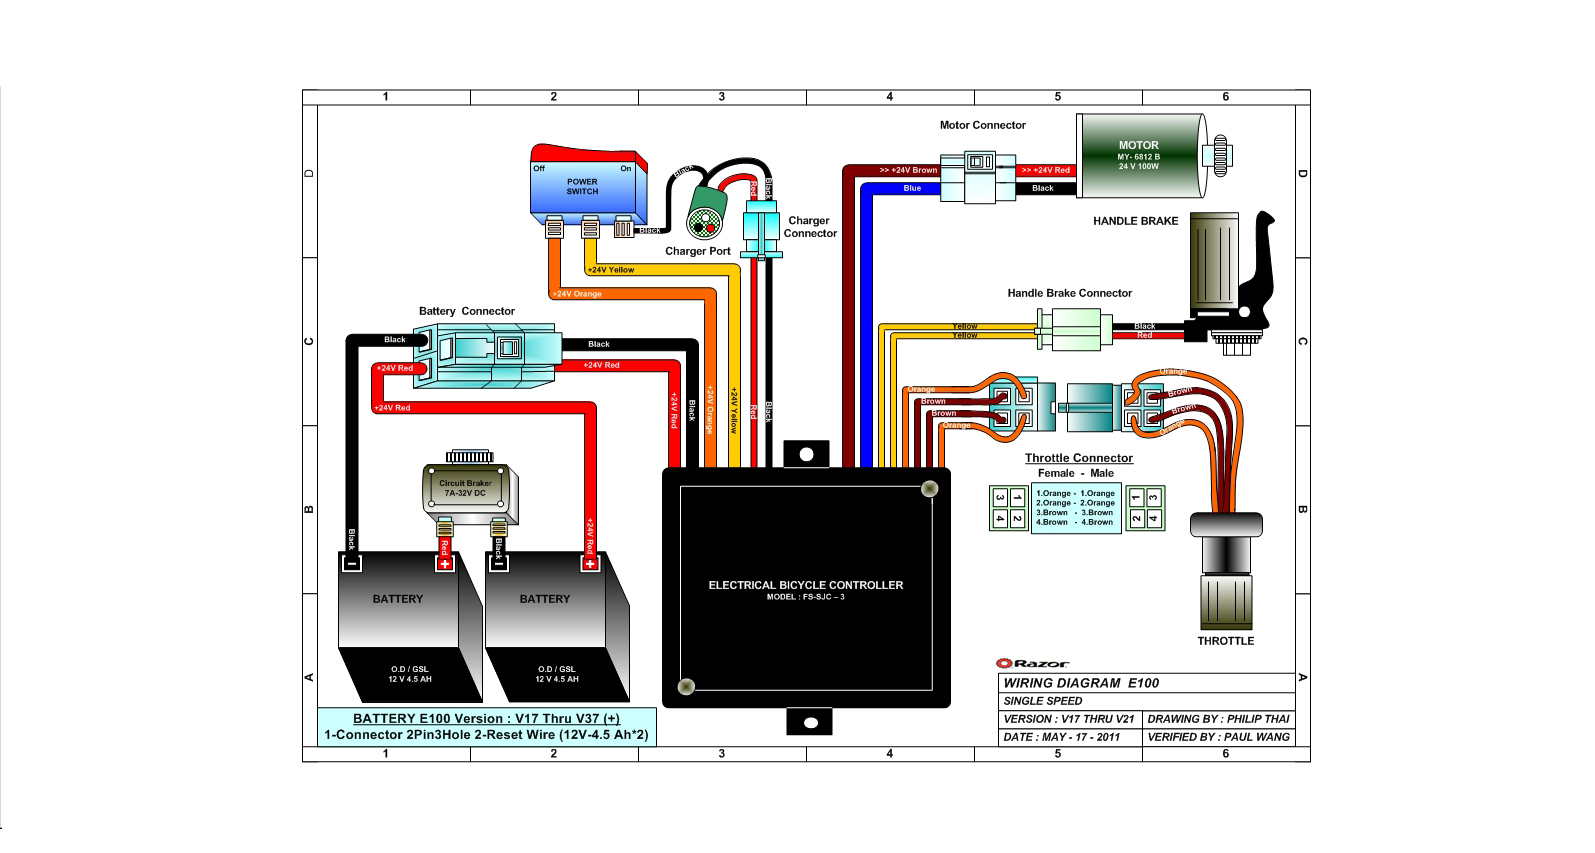 hight resolution of e100 versions 17 21 wiring diagram